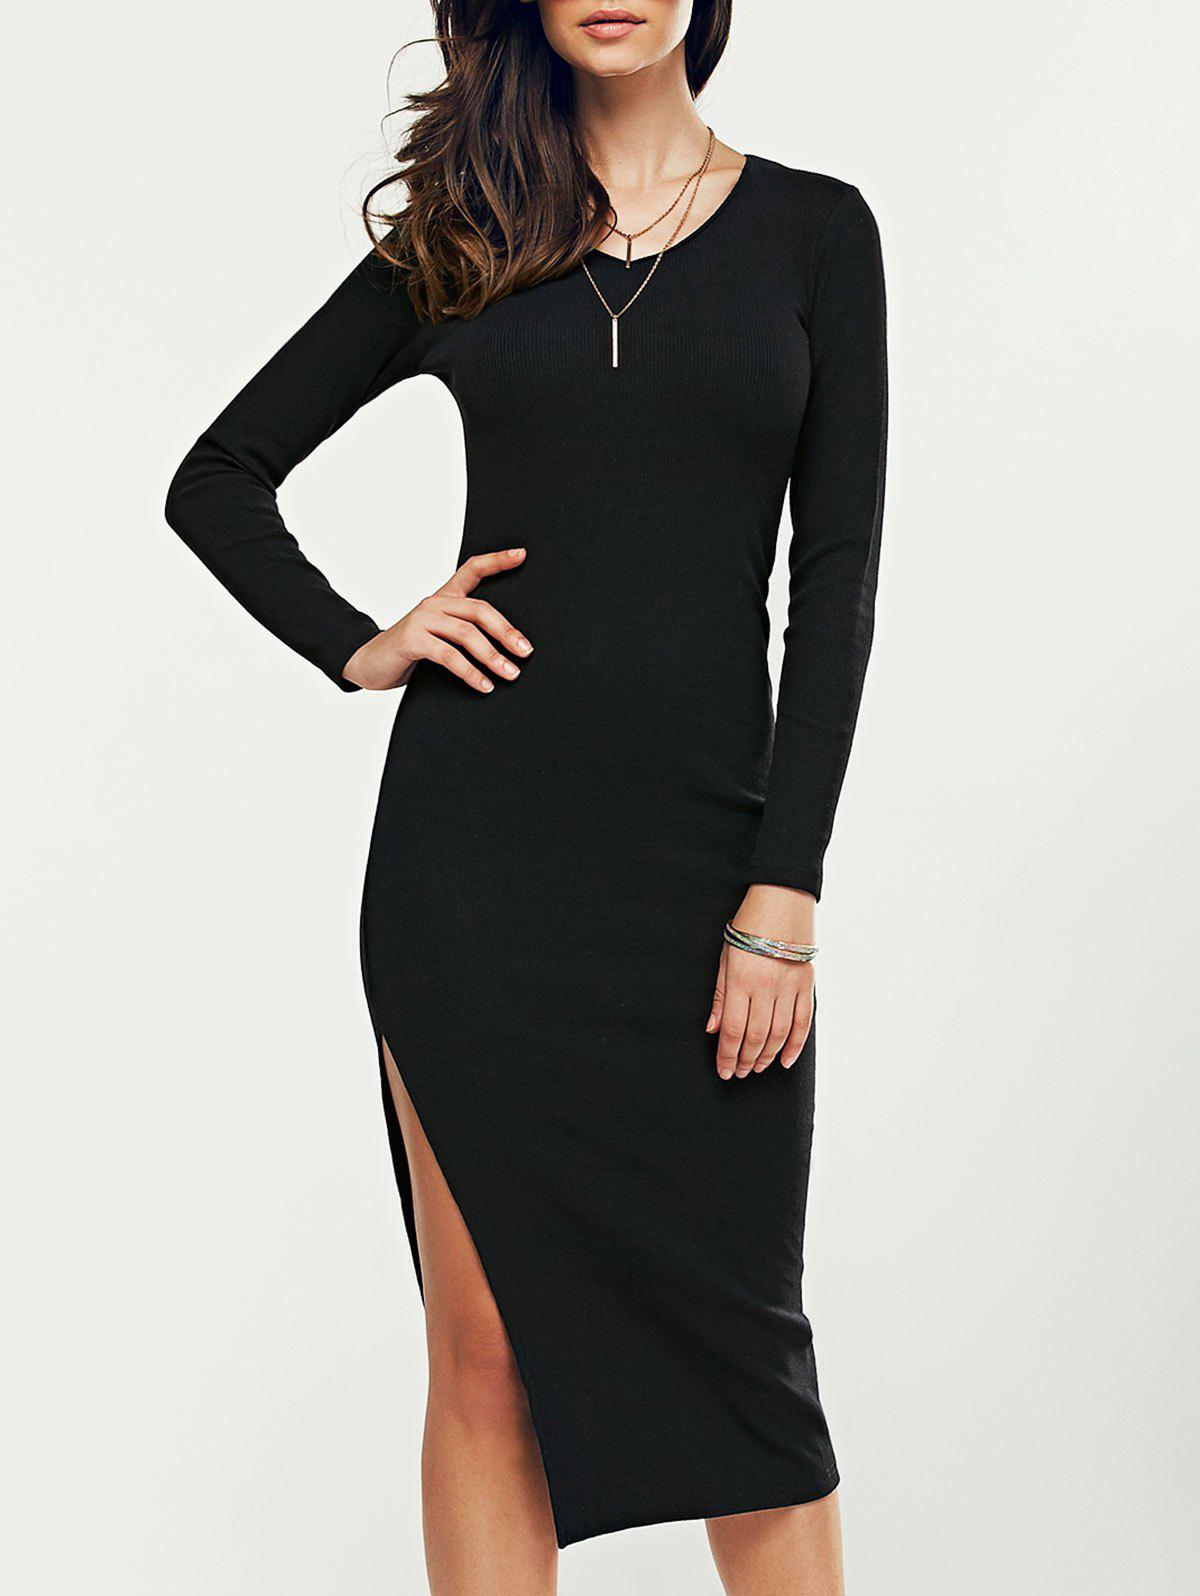 V Neck High Slit Midi Sweater DressWomen<br><br><br>Size: M<br>Color: BLACK